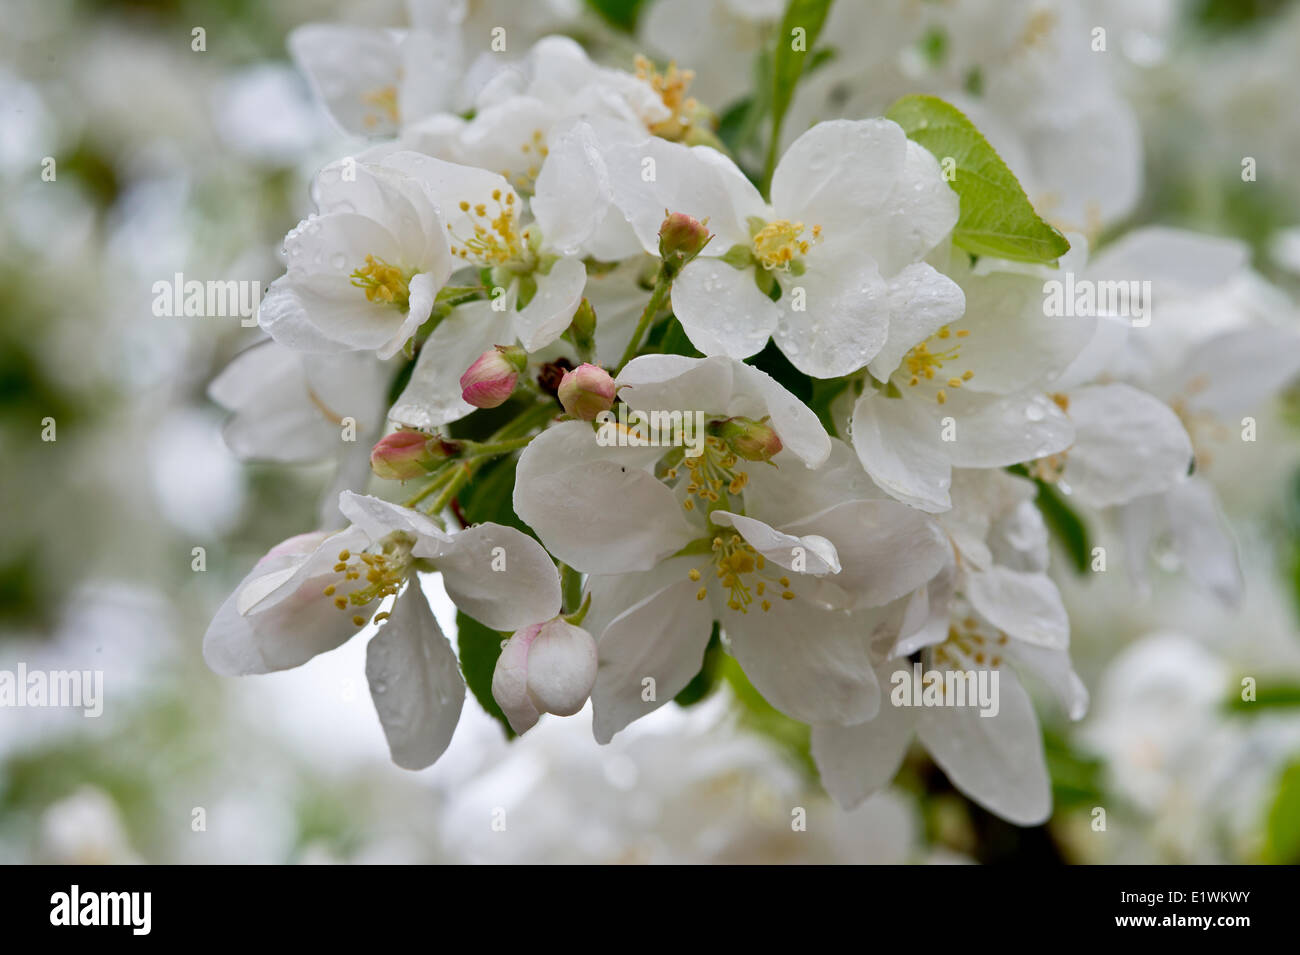 Pear Blossoms, pyrus rosaceae - Stock Image